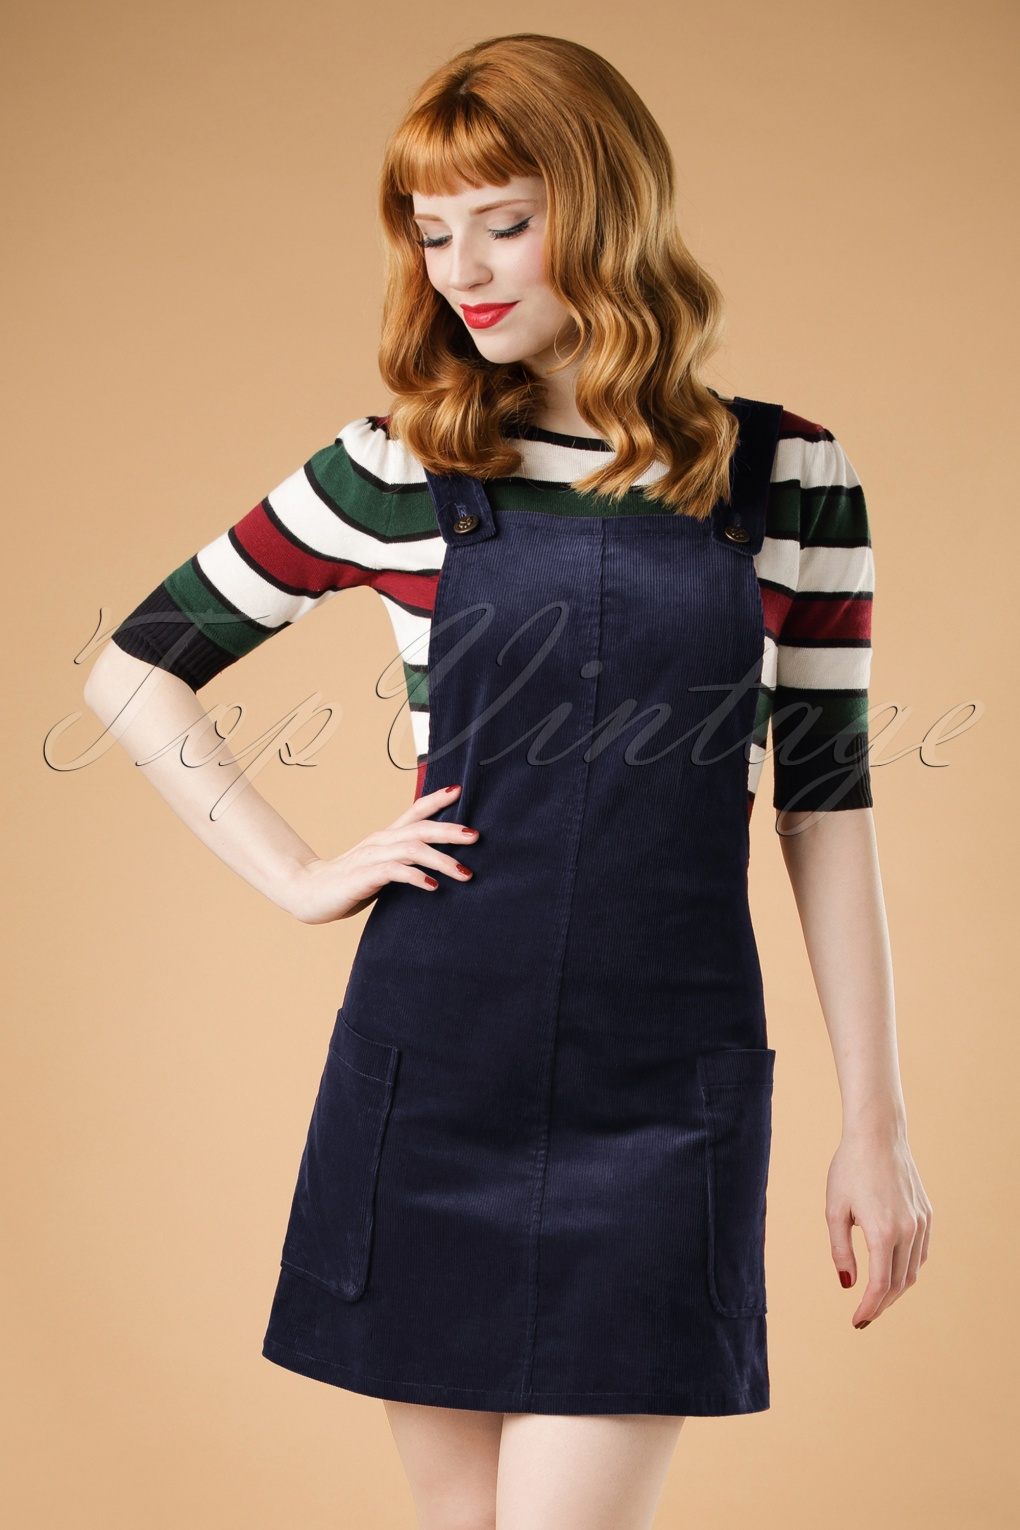 1960s Mad Men Dresses and Clothing Styles 60s Lena Pinafore Dress in Navy £21.23 AT vintagedancer.com